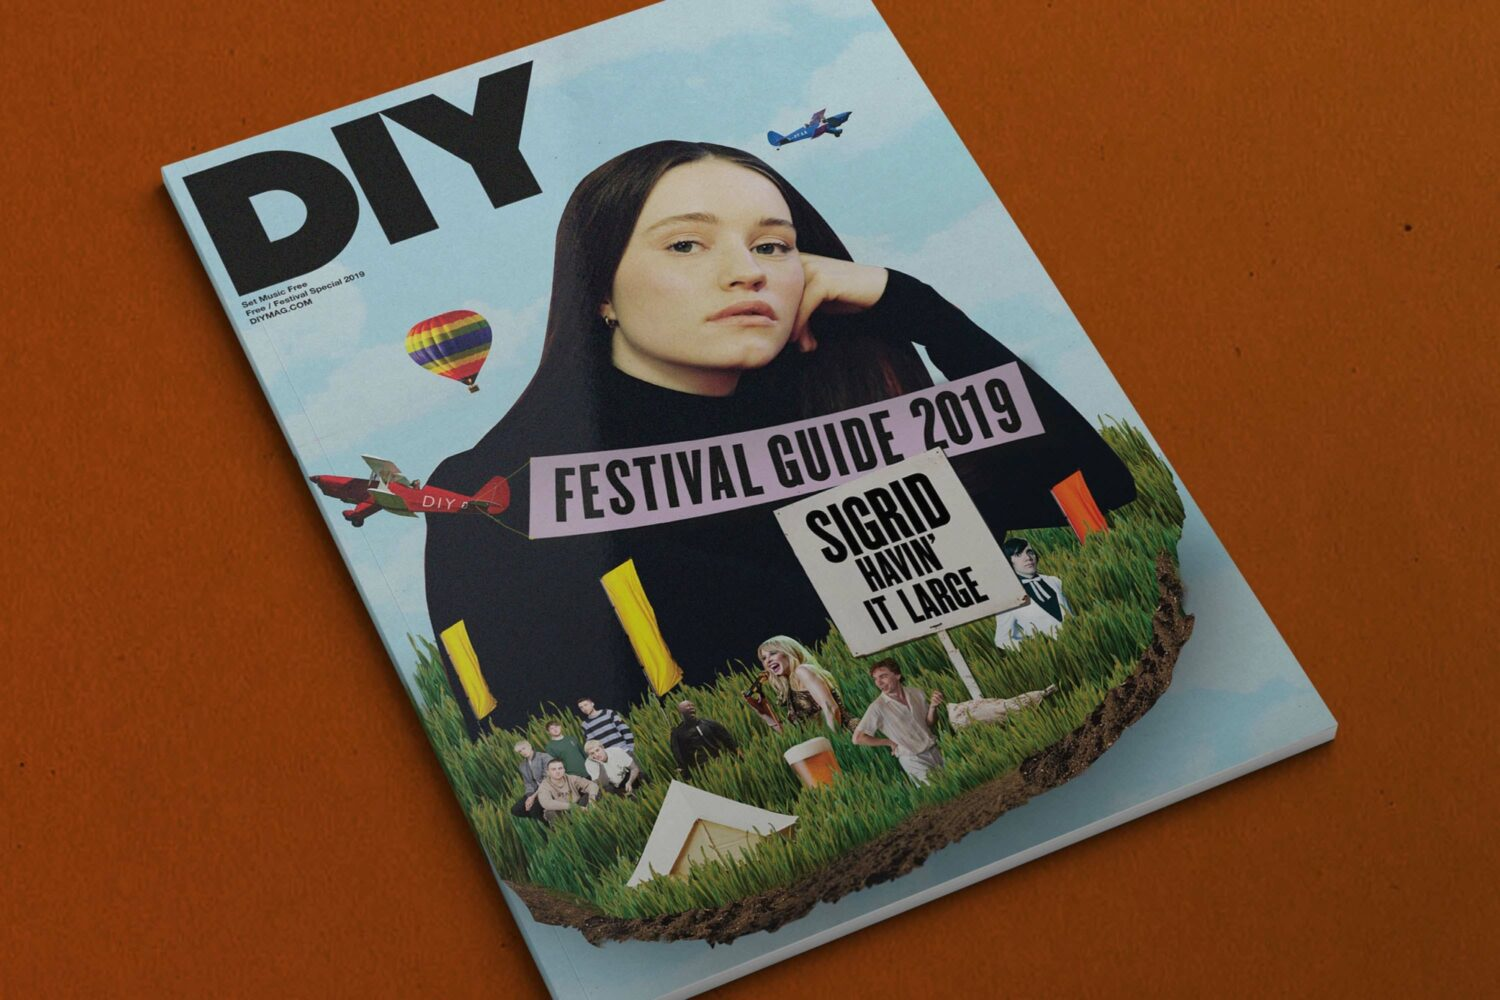 Introducing the DIY Festival Guide 2019, featuring Sigrid, Bring Me The Horizon, The Hives & more!